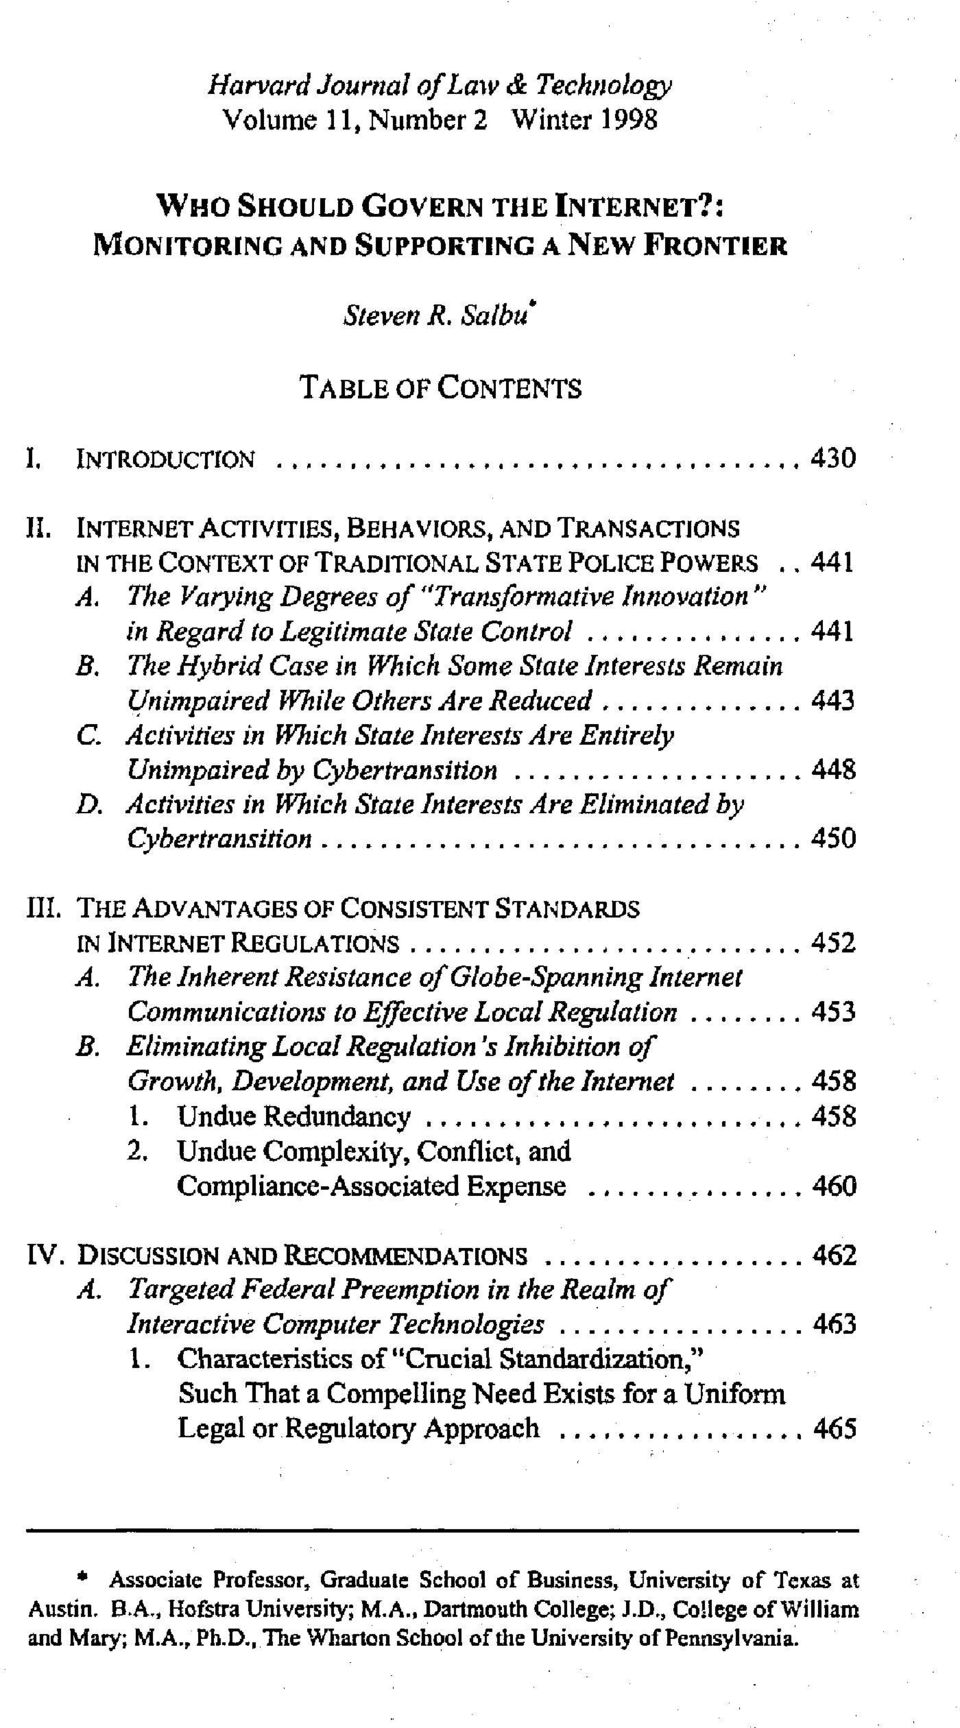 "The Varying Degrees of ""Transformative Innovation"" in Regard to Legitimate State Control... 441 B. The Hybrid Case in Which Some State Interests Remain Unimpaired While Others Are Reduced... 443 C."